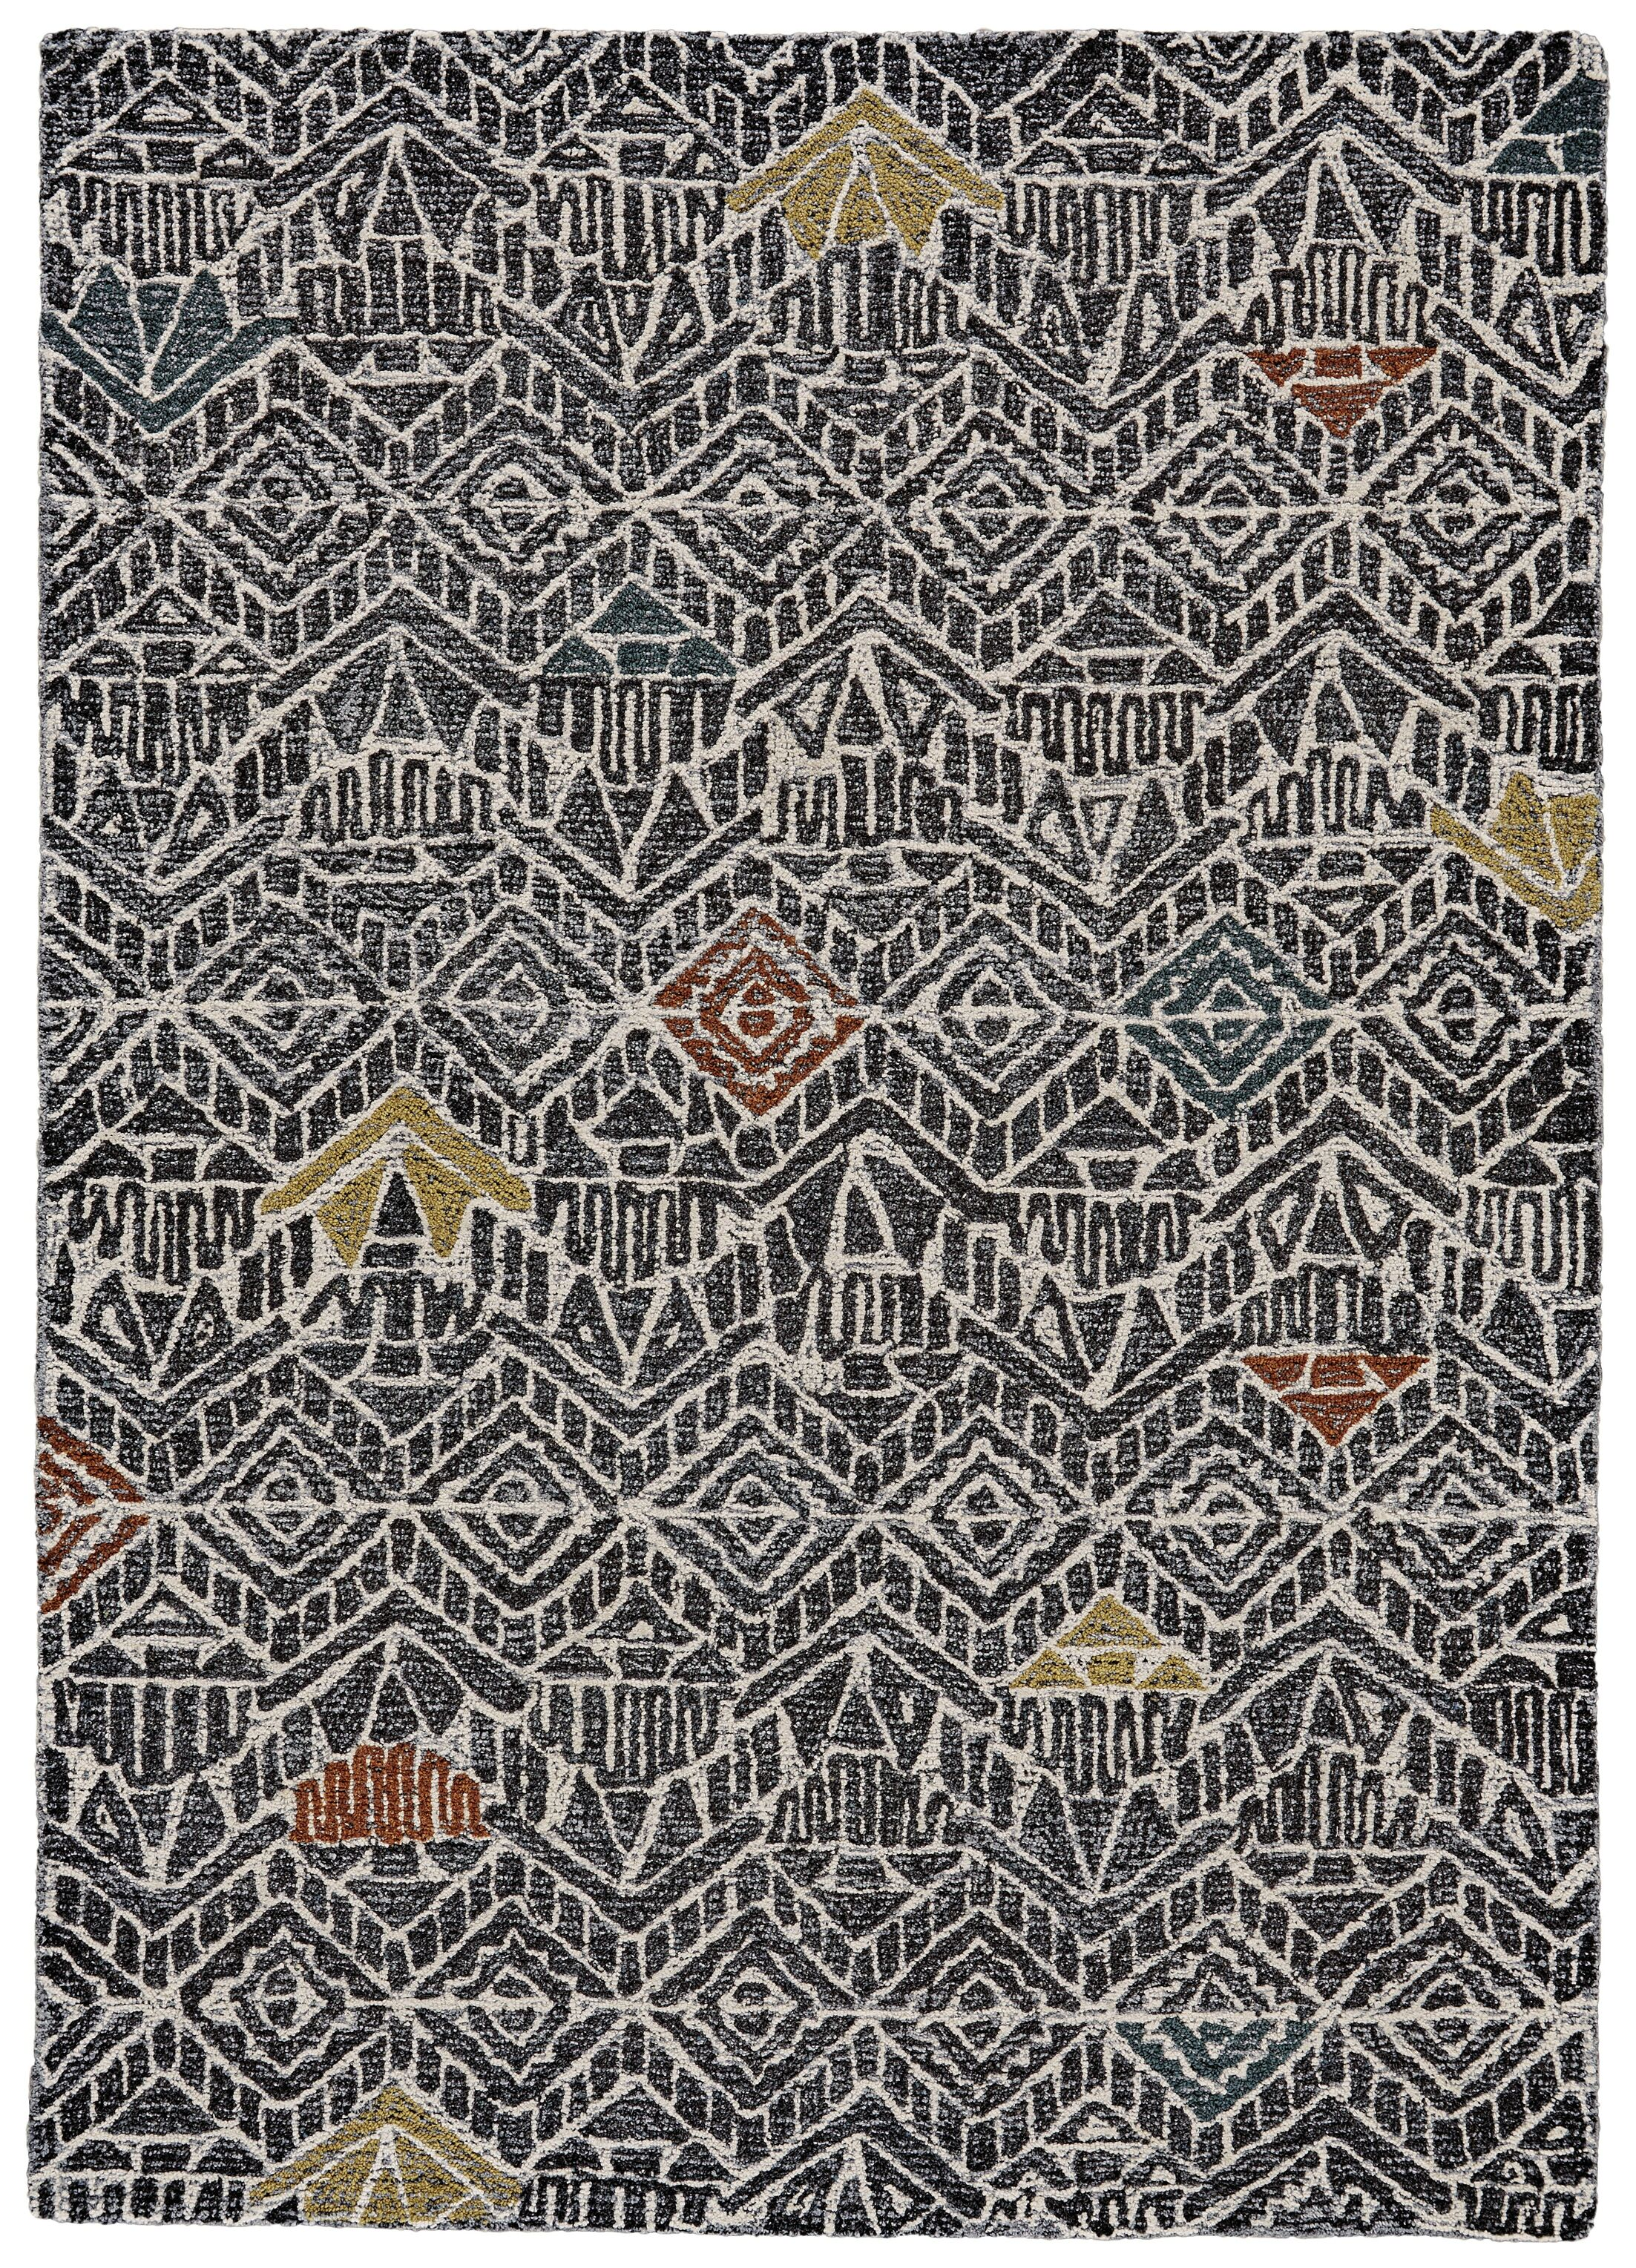 Reger Hand-Tufted Wool Charcoal Area Rug Rug Size: Rectangle 5' x 8'